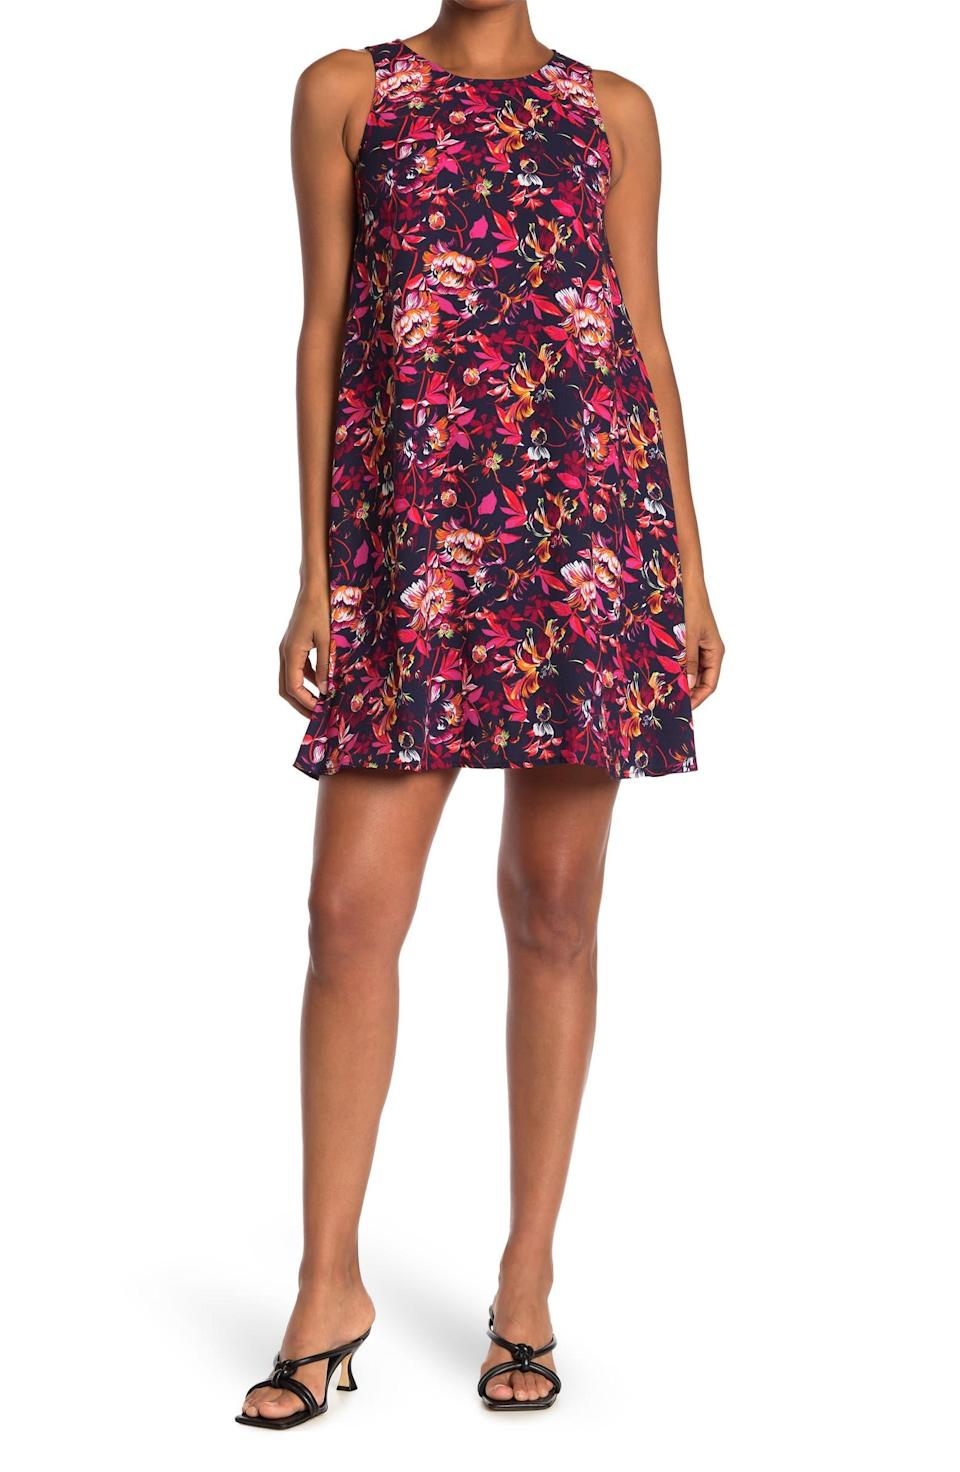 """<h2>Halogen A-Line Dress</h2><br>Flirty, flowery, flowy: a summer frock trifecta. The lightweight fabric of this printed dress makes it a fun warm-weather favorite. <br><br><strong>The Hype:</strong> 4 out of 5 stars; 190 reviews on <a href=""""https://www.nordstromrack.com/s/halogen-a-line-dress-regular-petite/4471803"""" rel=""""nofollow noopener"""" target=""""_blank"""" data-ylk=""""slk:NordstromRack.com"""" class=""""link rapid-noclick-resp"""">NordstromRack.com</a><br><br><strong>What They're Saying:</strong> """"Fabric is light and will be cool for Texas hot summers. Very nice pattern and will work well for my extra-wide hips and bust. I especially like the armholes aren't too large like some XL tops. Will be very comfortable. I've bought two Halogen dresses."""" — Bclearnow, NordstromRack.com reviewer<br><br><strong>Halogen</strong> ® A-Line Dress, $, available at <a href=""""https://go.skimresources.com/?id=30283X879131&url=https%3A%2F%2Fwww.nordstromrack.com%2Fs%2Fhalogen-a-line-dress-regular-petite%2F4471803"""" rel=""""nofollow noopener"""" target=""""_blank"""" data-ylk=""""slk:Nordstrom Rack"""" class=""""link rapid-noclick-resp"""">Nordstrom Rack</a>"""